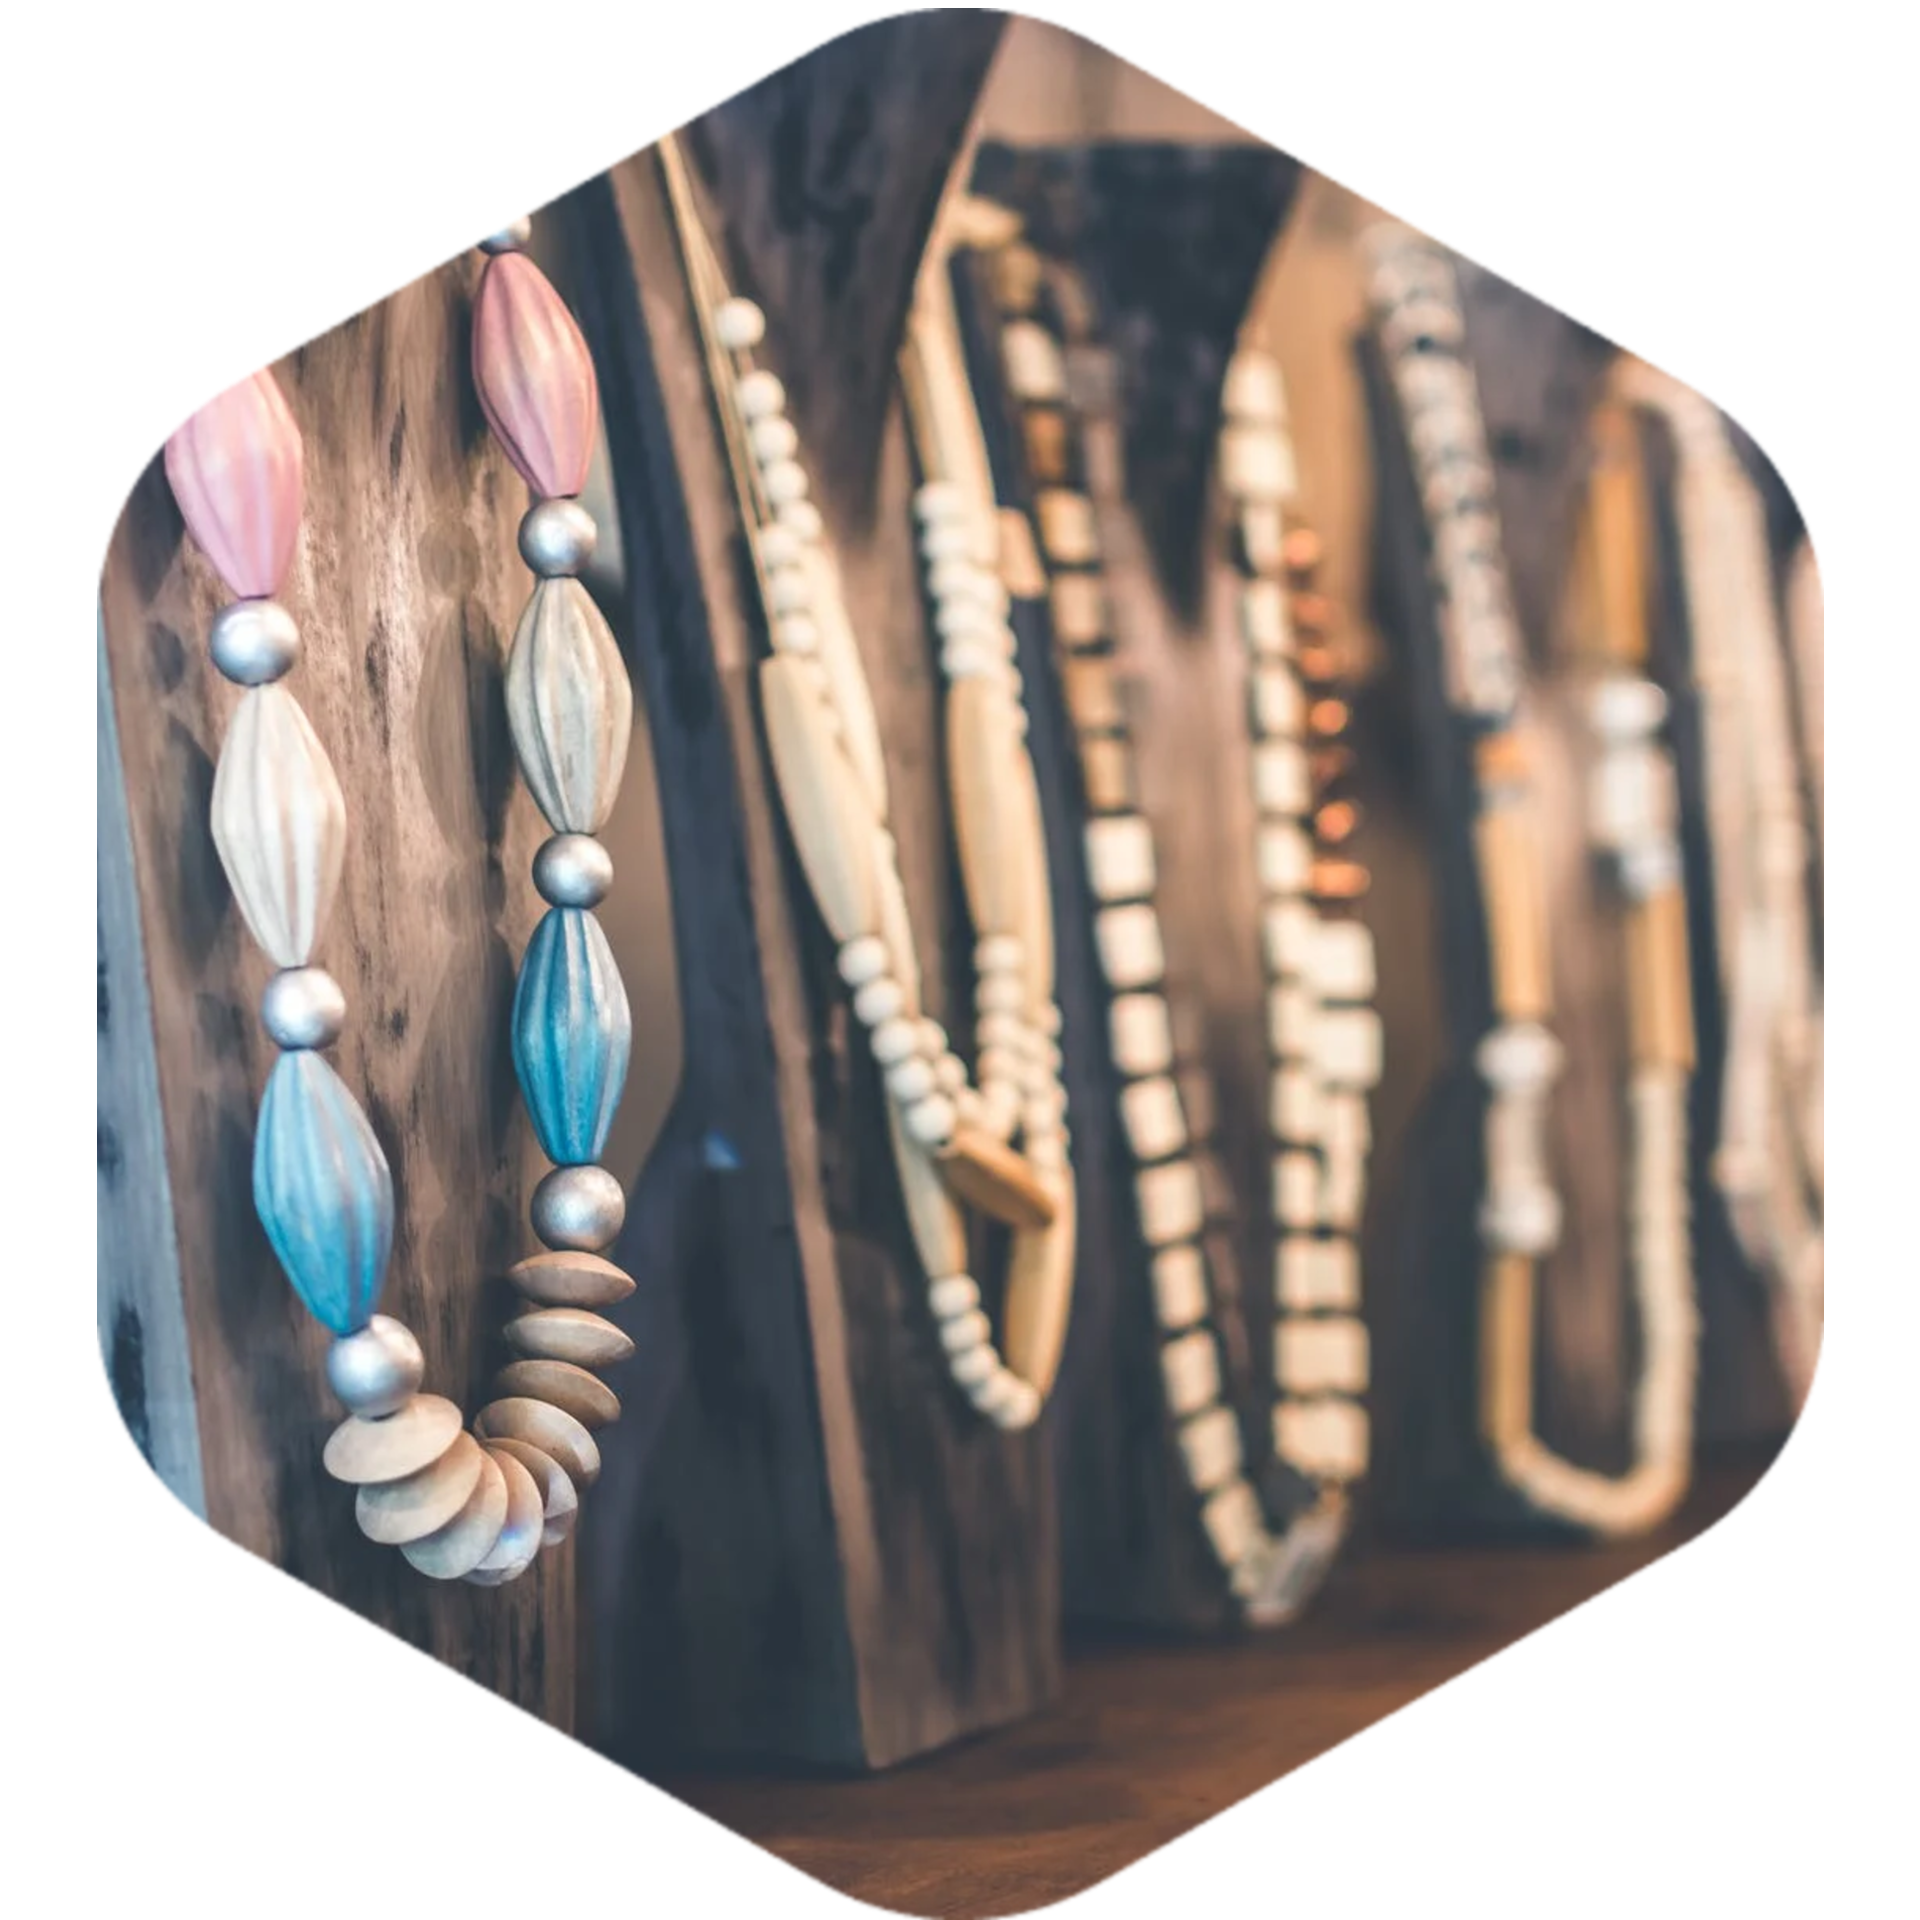 Grow Your Accessories Businesses With The Leading Shopify POS System